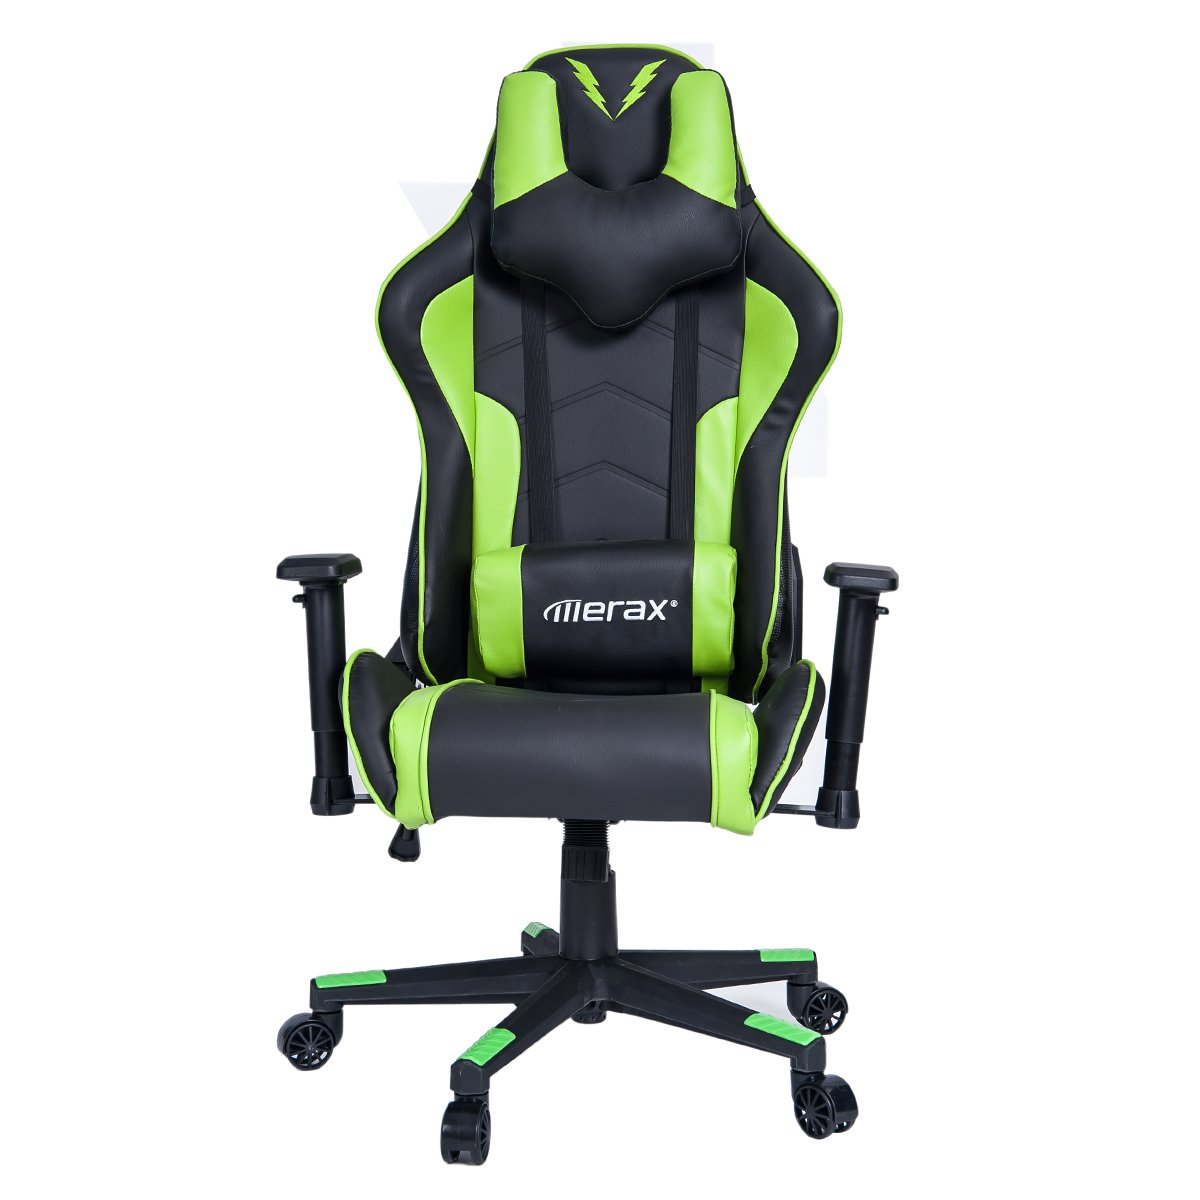 Merax U-Knight Series Racing Style Gaming Chair Ergonomic High Back PU Leather (Green and Black)